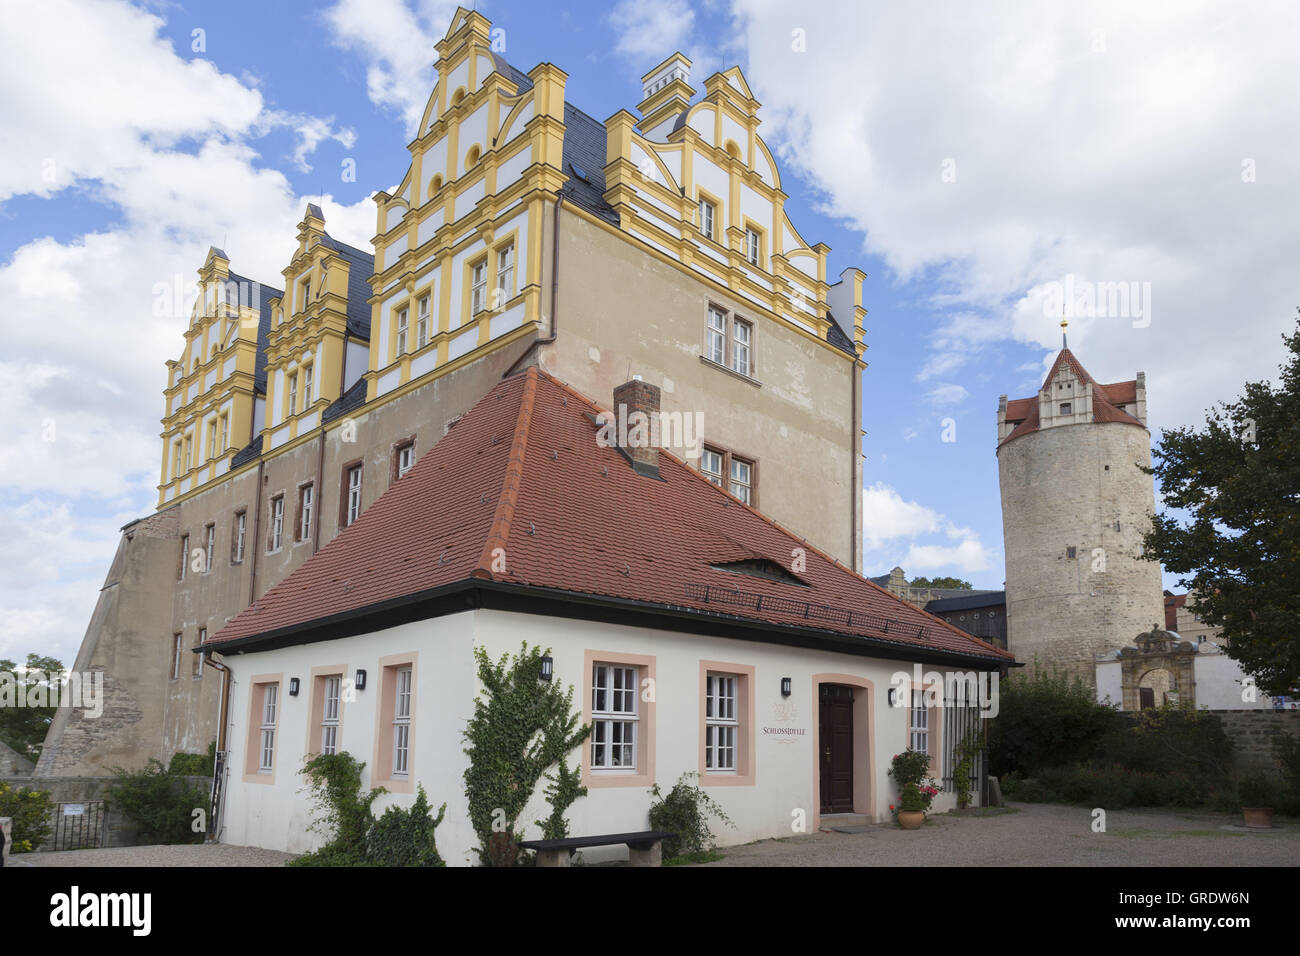 Small Cafe In Front Of A Castle Wing In Bernburg Saxony-Anhalt - Stock Image